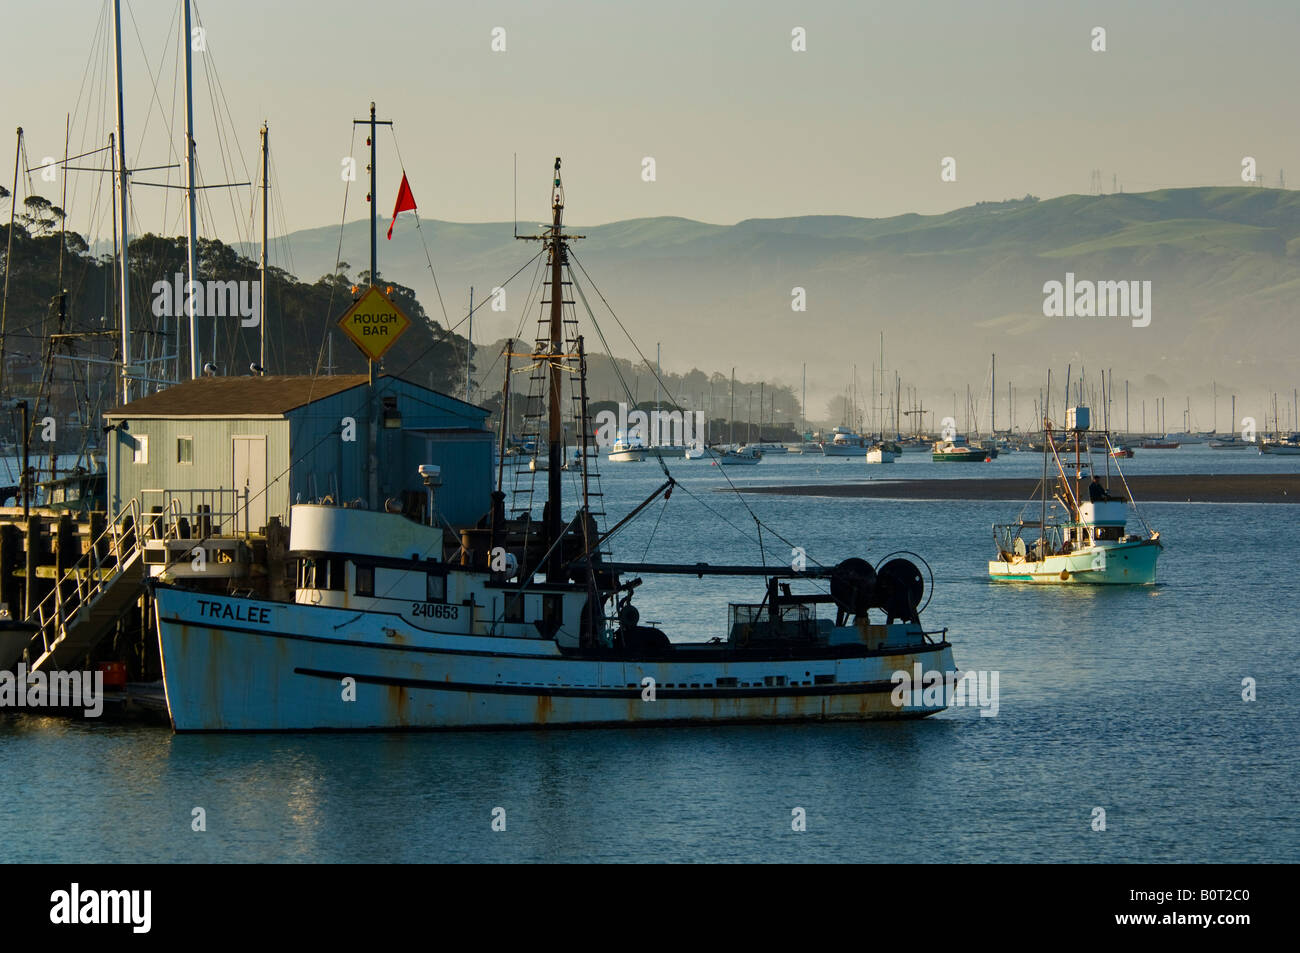 Commercial fishing boat in morro bay california stock for Morro bay fishing